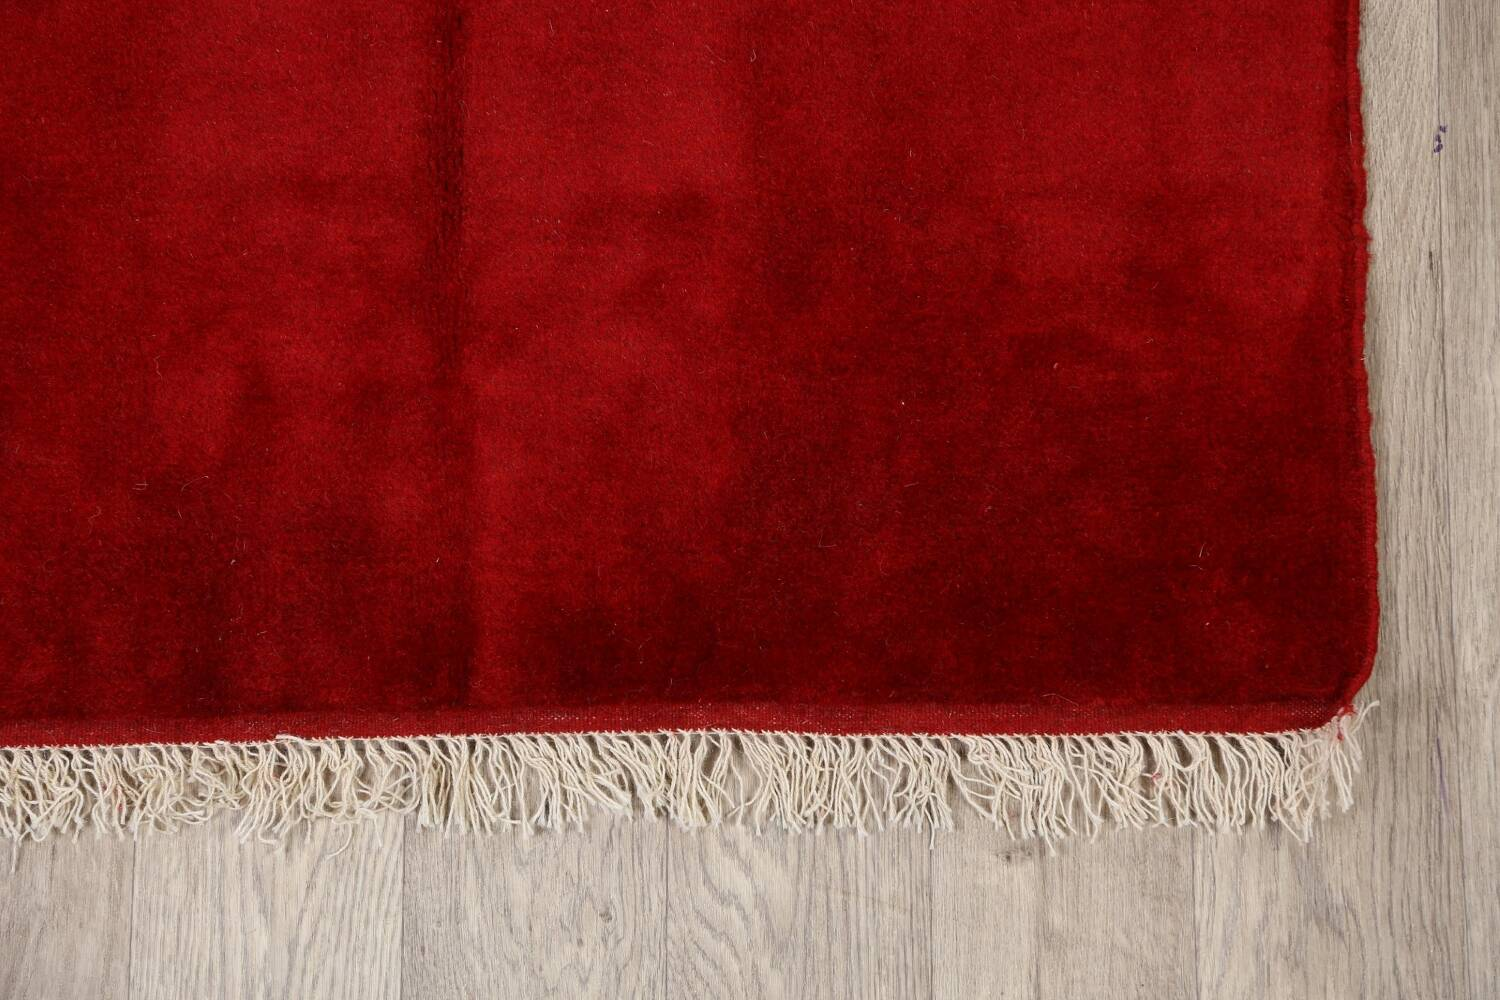 Modern Red Gabbeh Shiraz Persian Area Rug 3x5 image 5